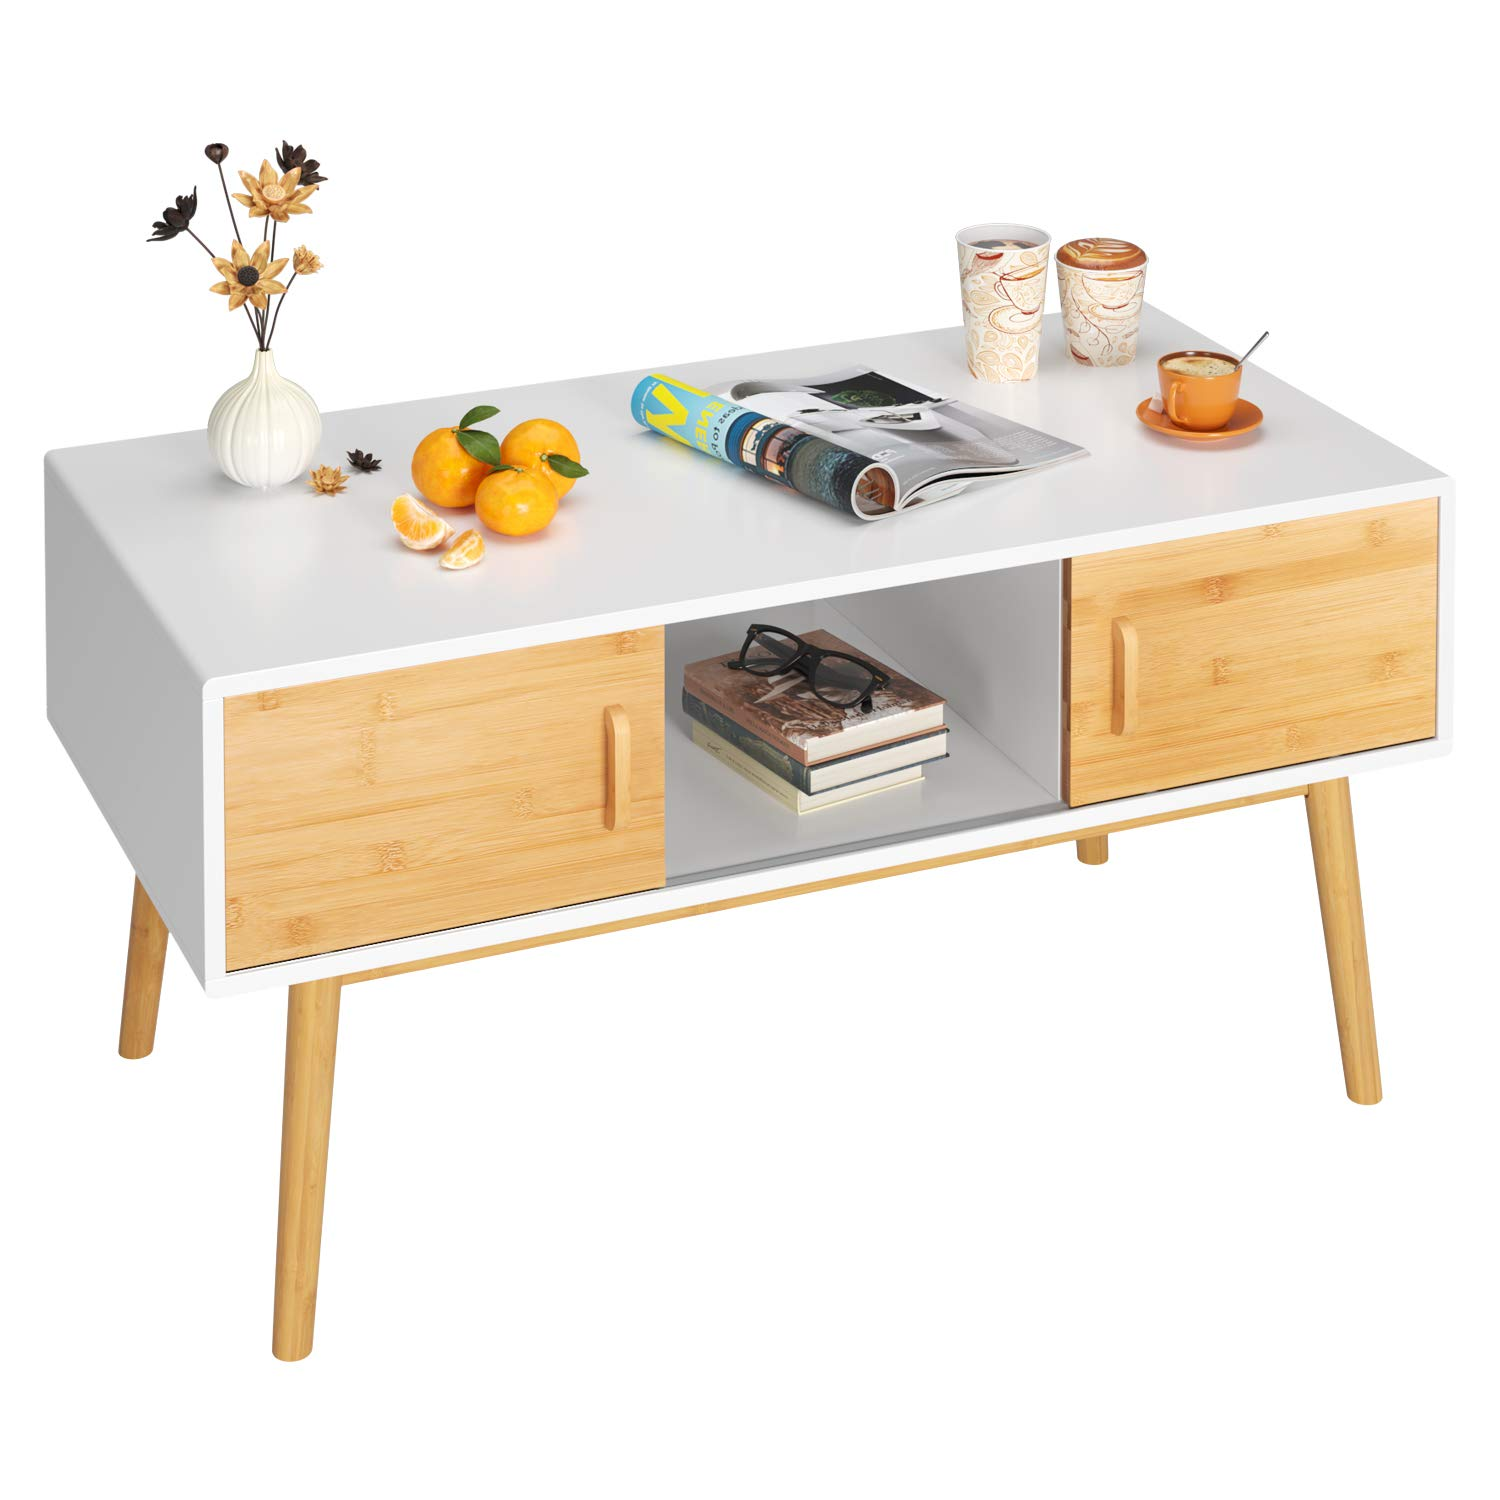 HOMECHO Wood Coffee Table Mid Century Modern Rectangular Cocktail Table with Storage Shelf, 4 BambooSlidingDoors and Legs for Home Office, White, HMC-MD-013 by HOMECHO